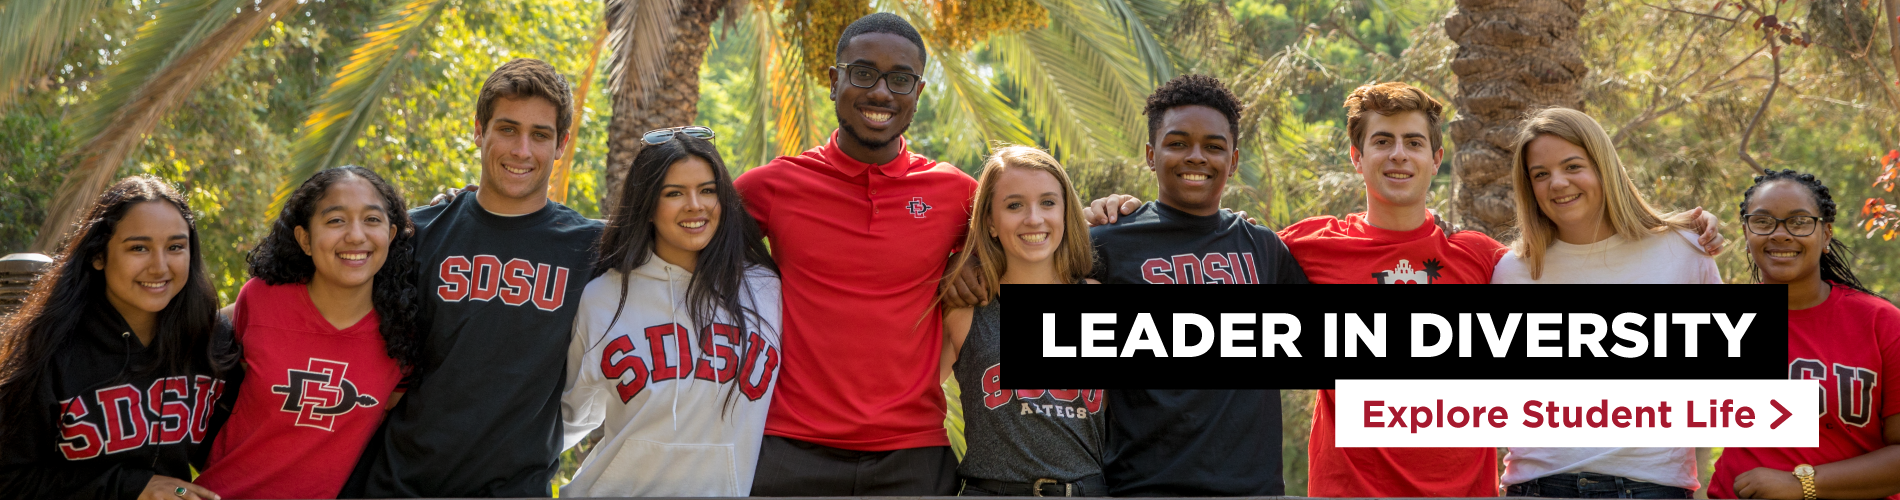 Leader in Diversity. Explore Student Life.